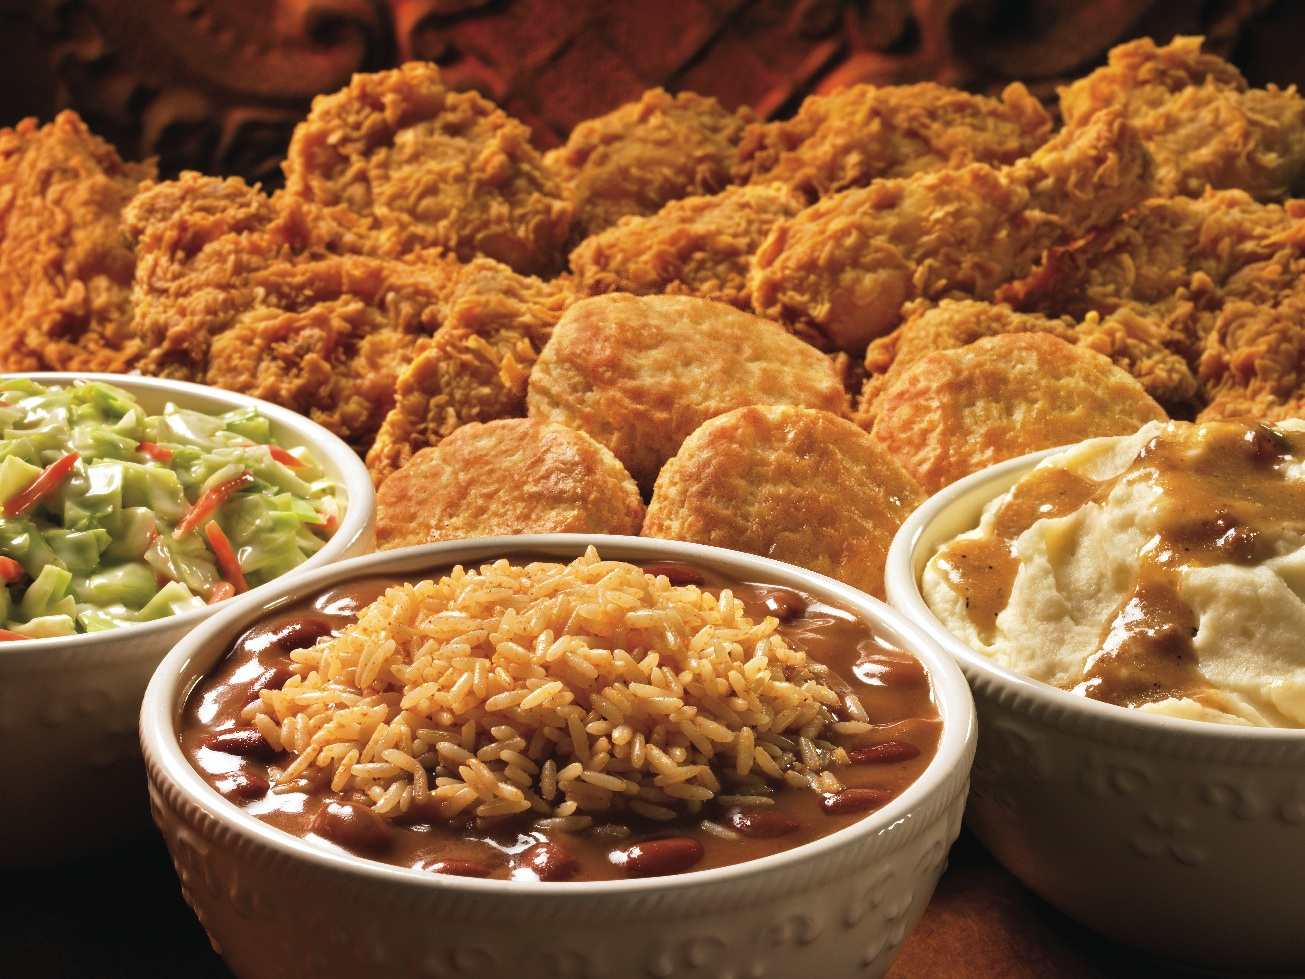 Popeyes Louisiana Kitchen Food popeyes louisiana kitchen 106 pisgah church rd greensboro, nc